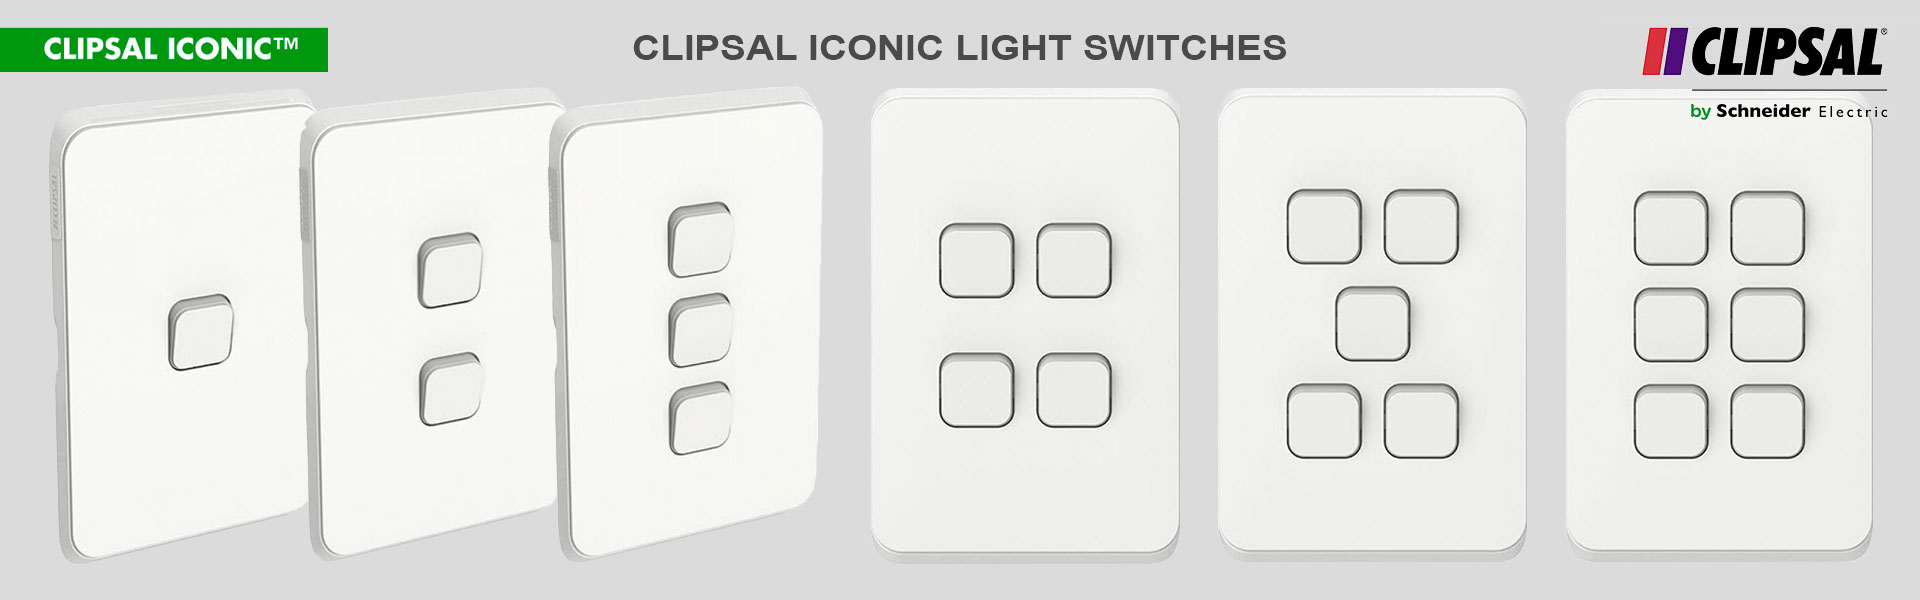 Clipsal Iconic Light Switches